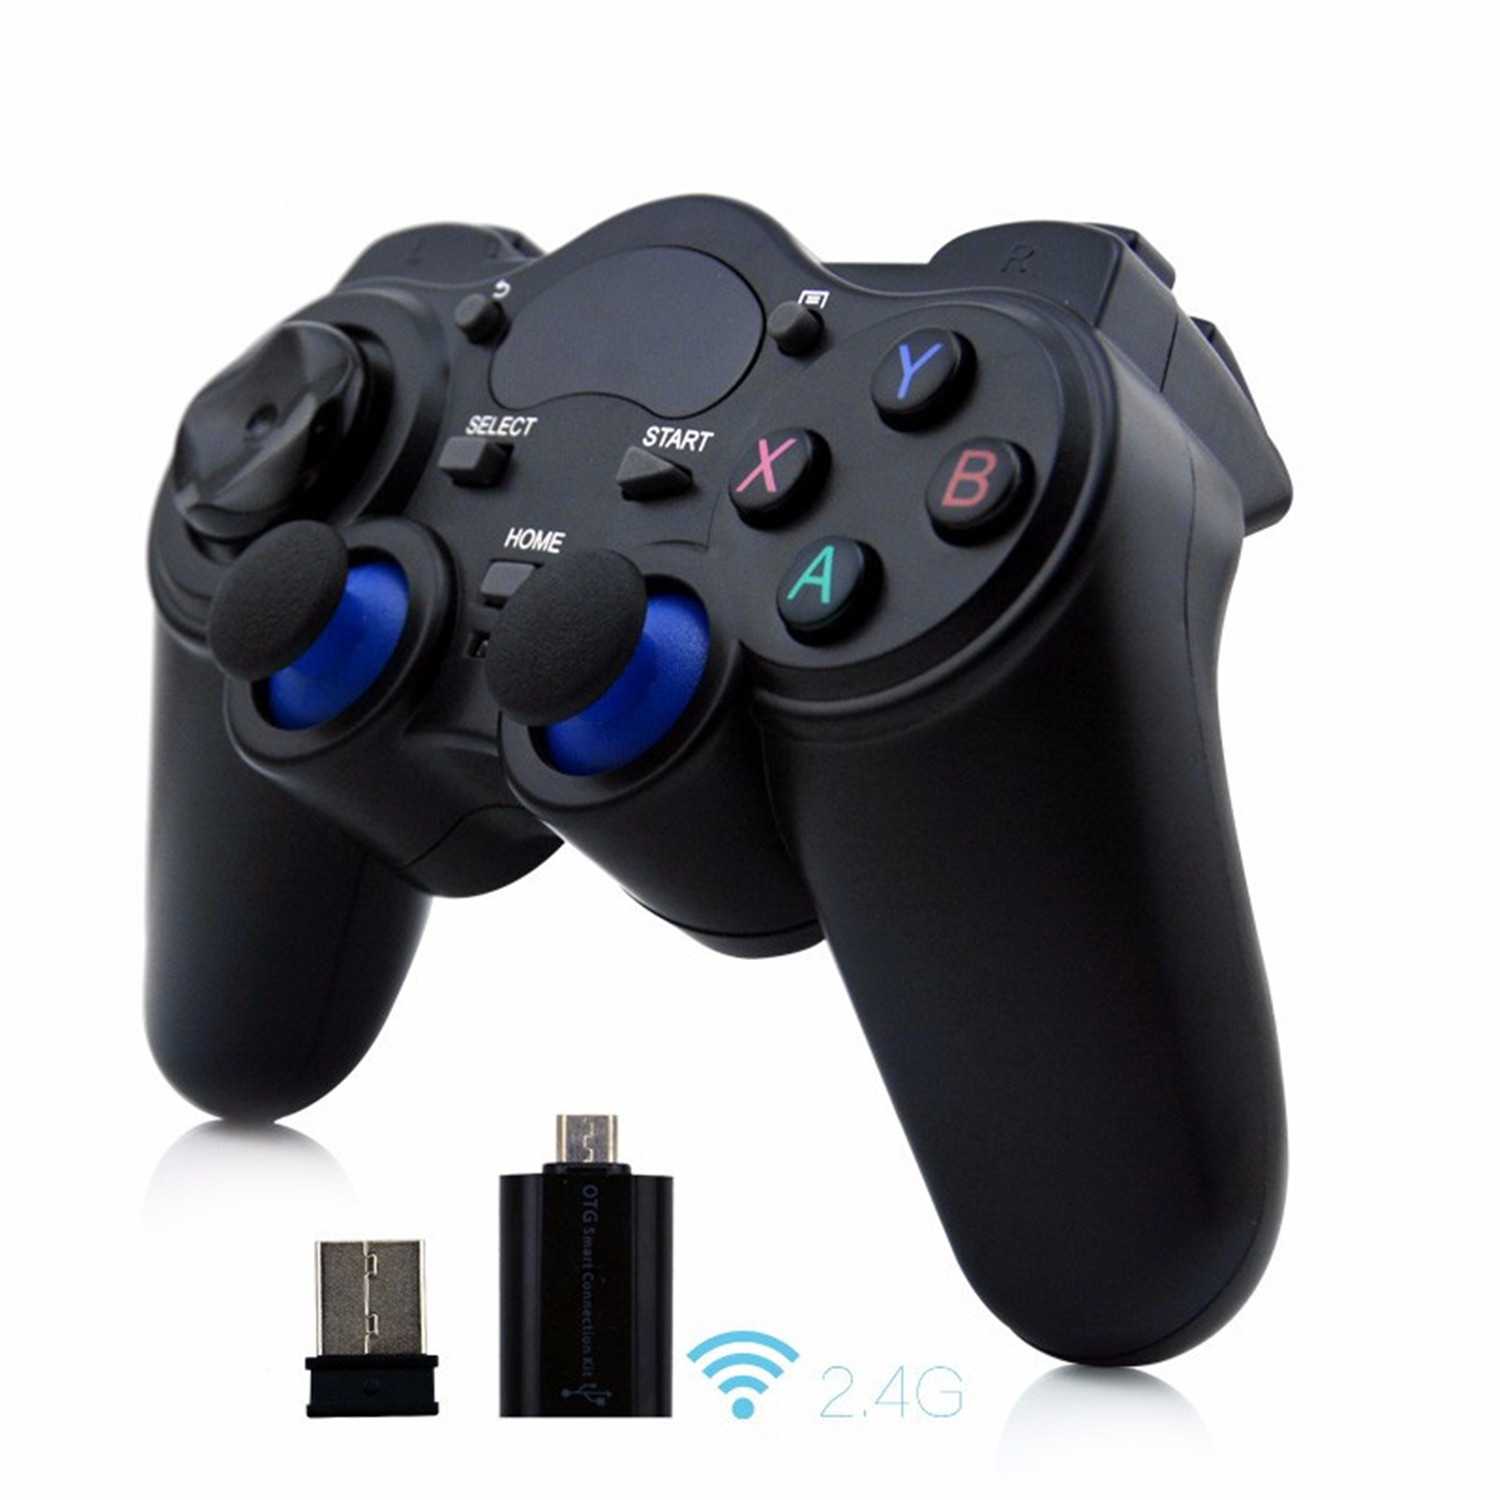 2.4g wireless Android controller Game Gamepad Joystick for ps3 controller Android TV Box Tablets PC GPD XD With USB Receiver